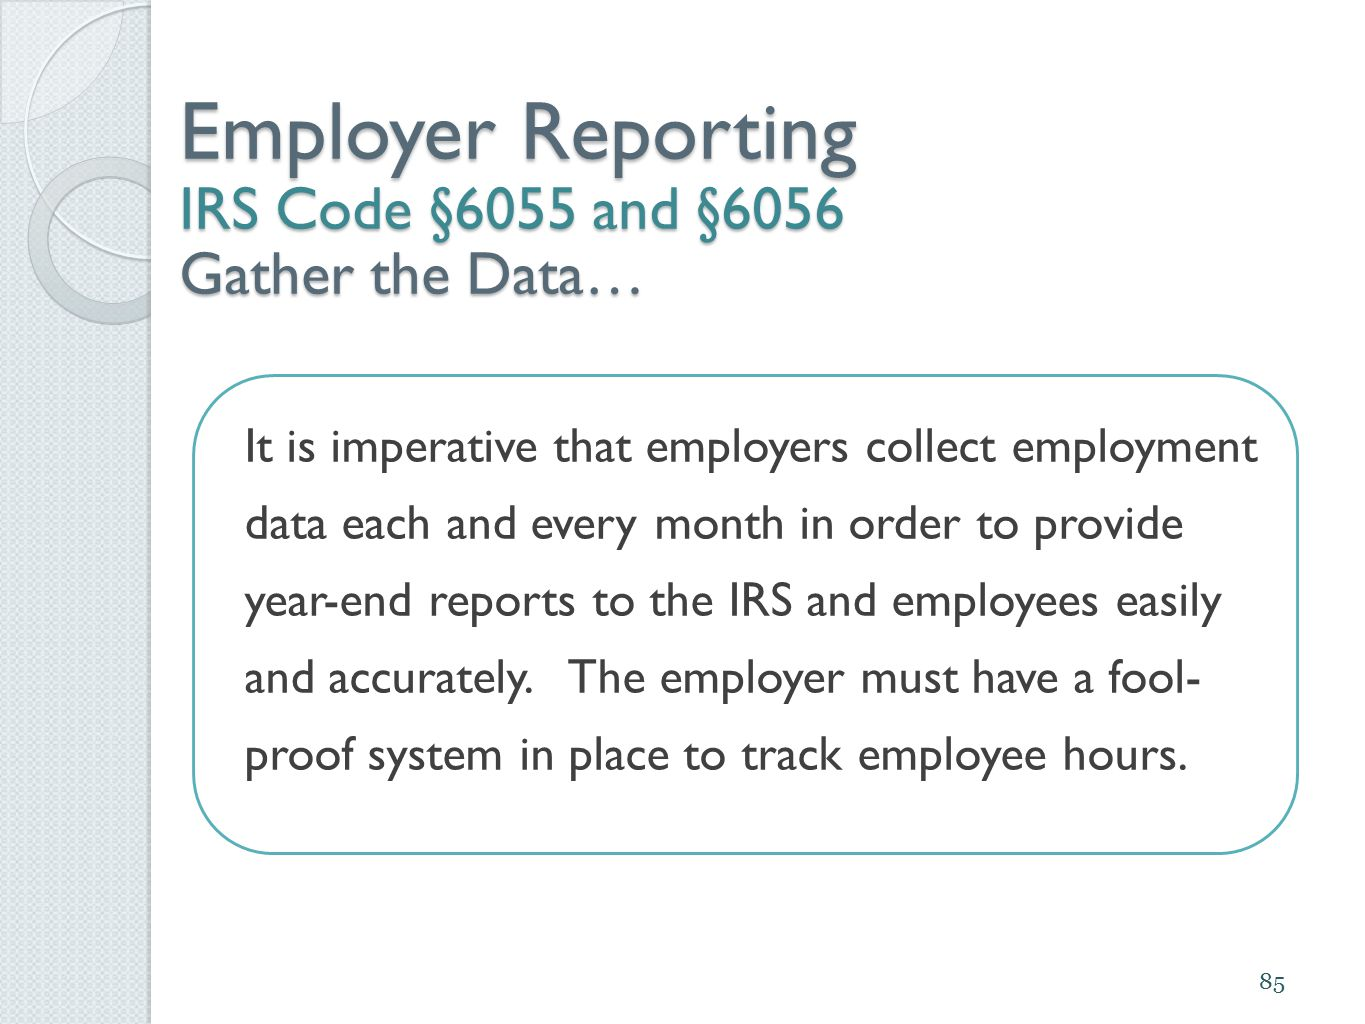 Employer Reporting IRS Code §6055 and §6056 Gather the Data… It is imperative that employers collect employment data each and every month in order to